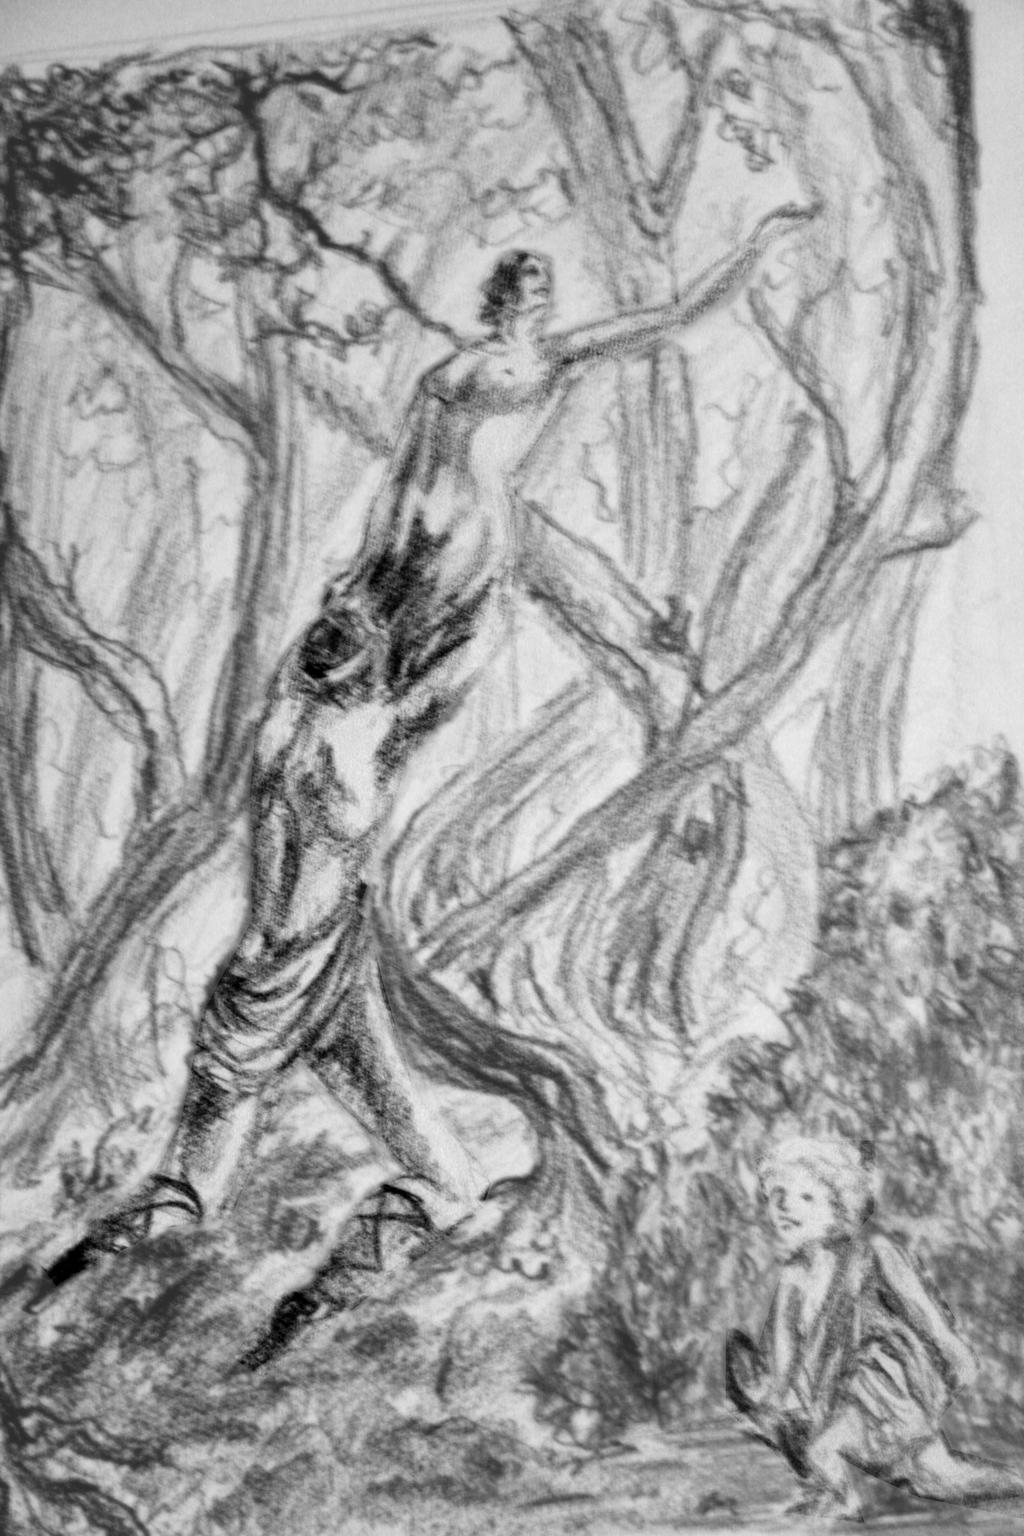 Greek Mythology ContestApollo and Daphne by Stercilus on DeviantArt